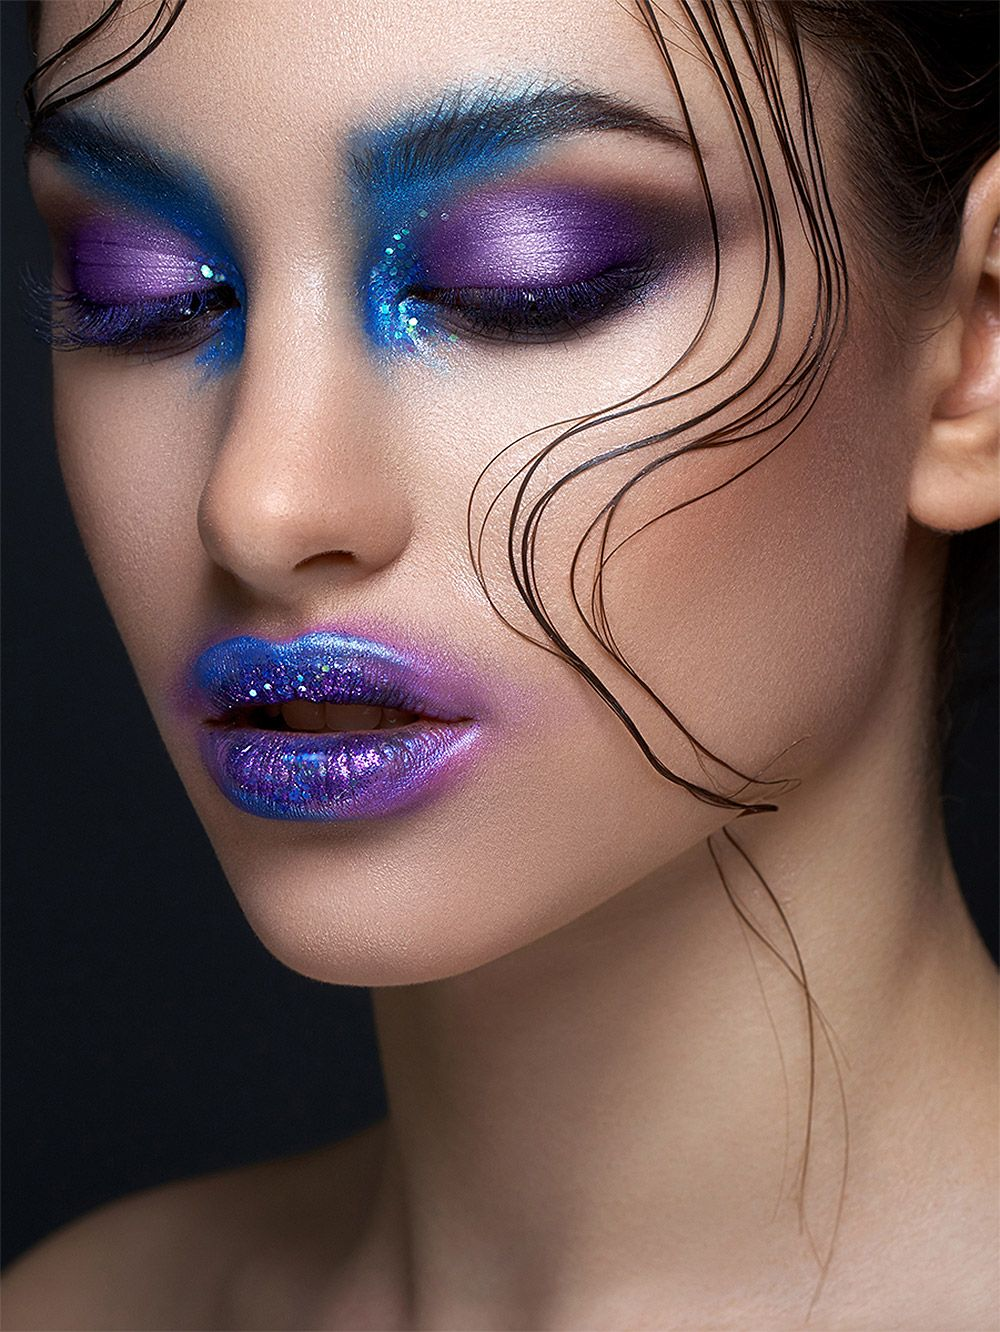 Creative Beauty Photography By Alex Malikov Inspiration Grid